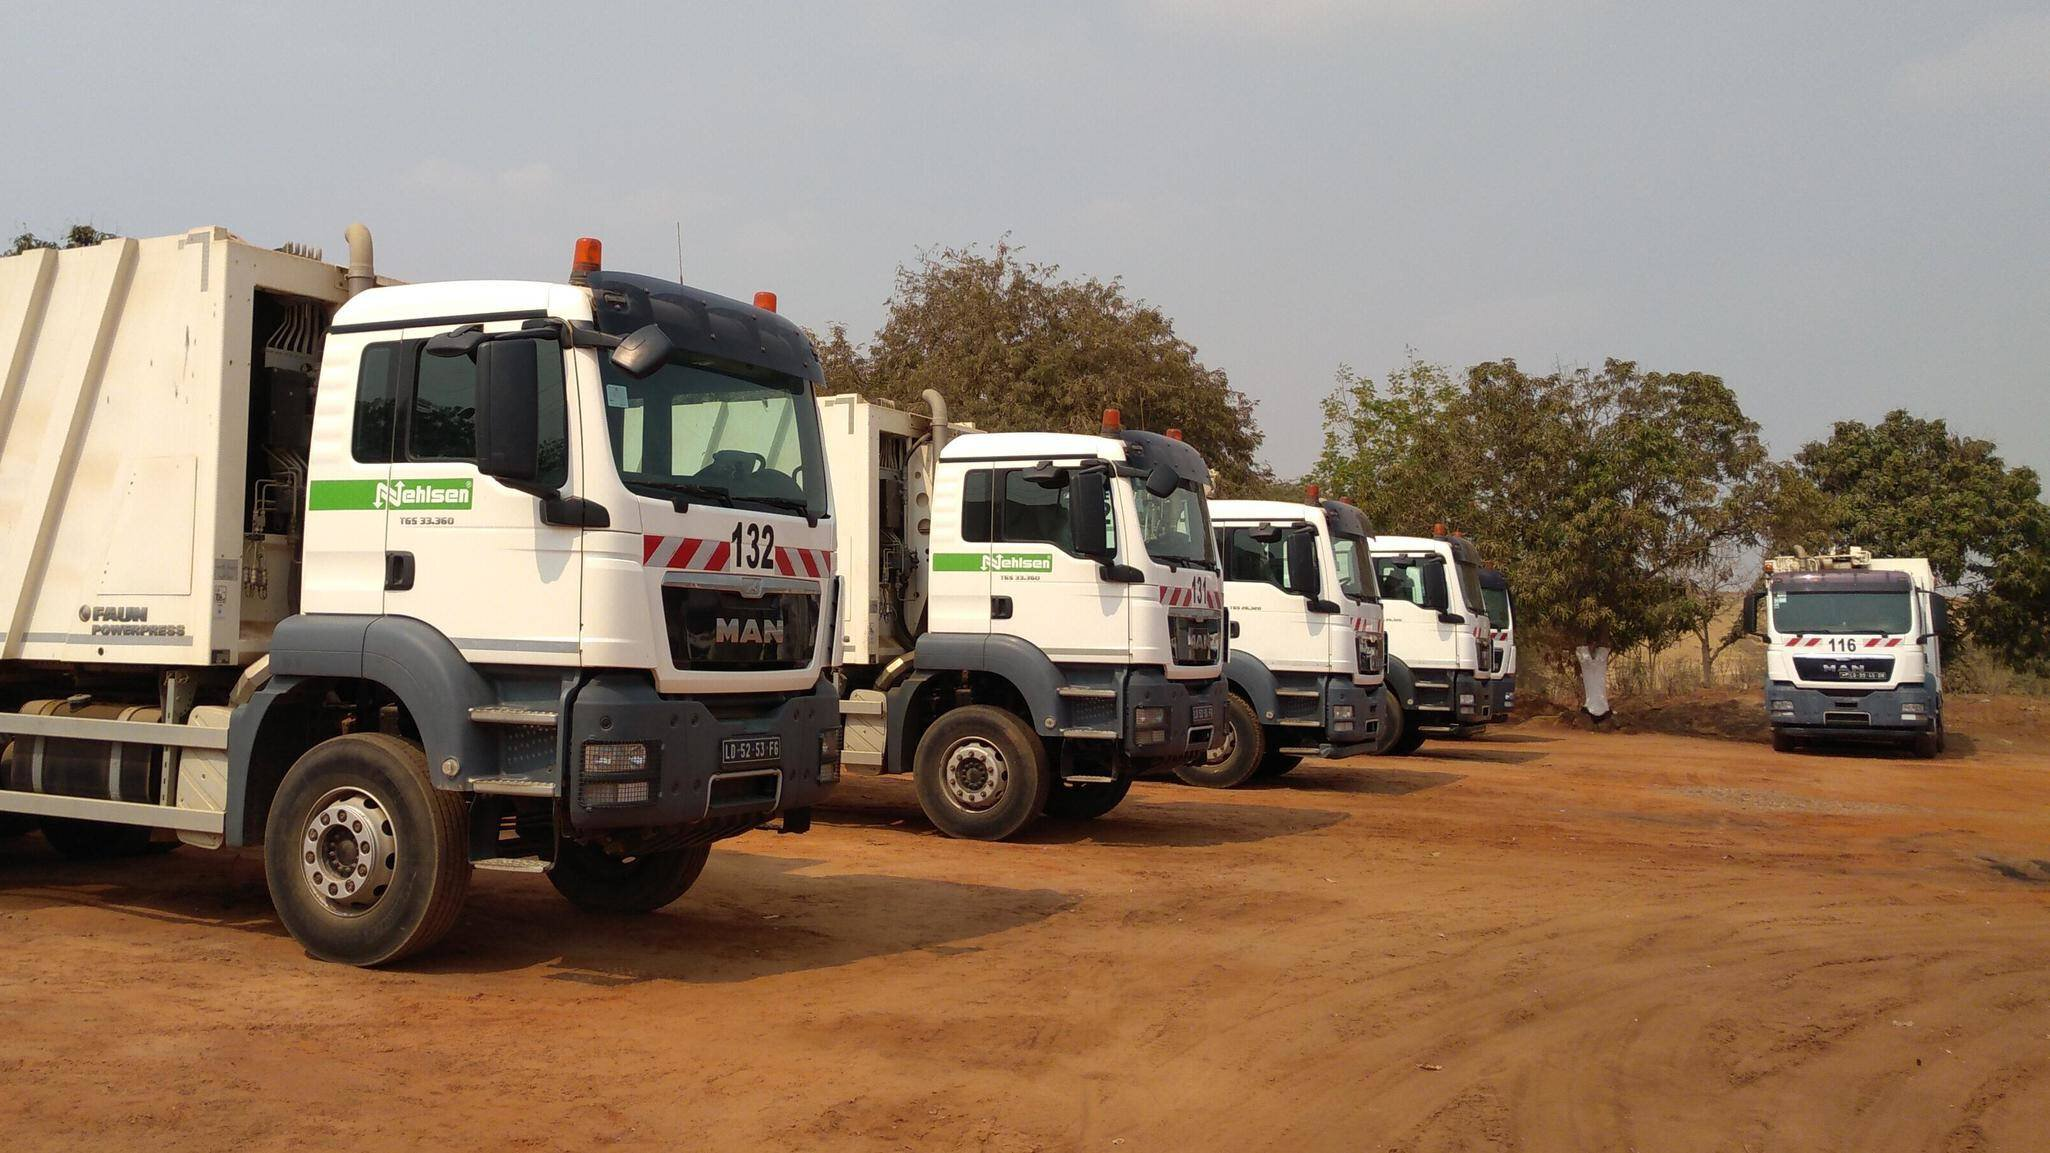 Gallery image 0 - The proud vehicle fleet our Nehlsen Ambiente Angola, our angolan daughter company